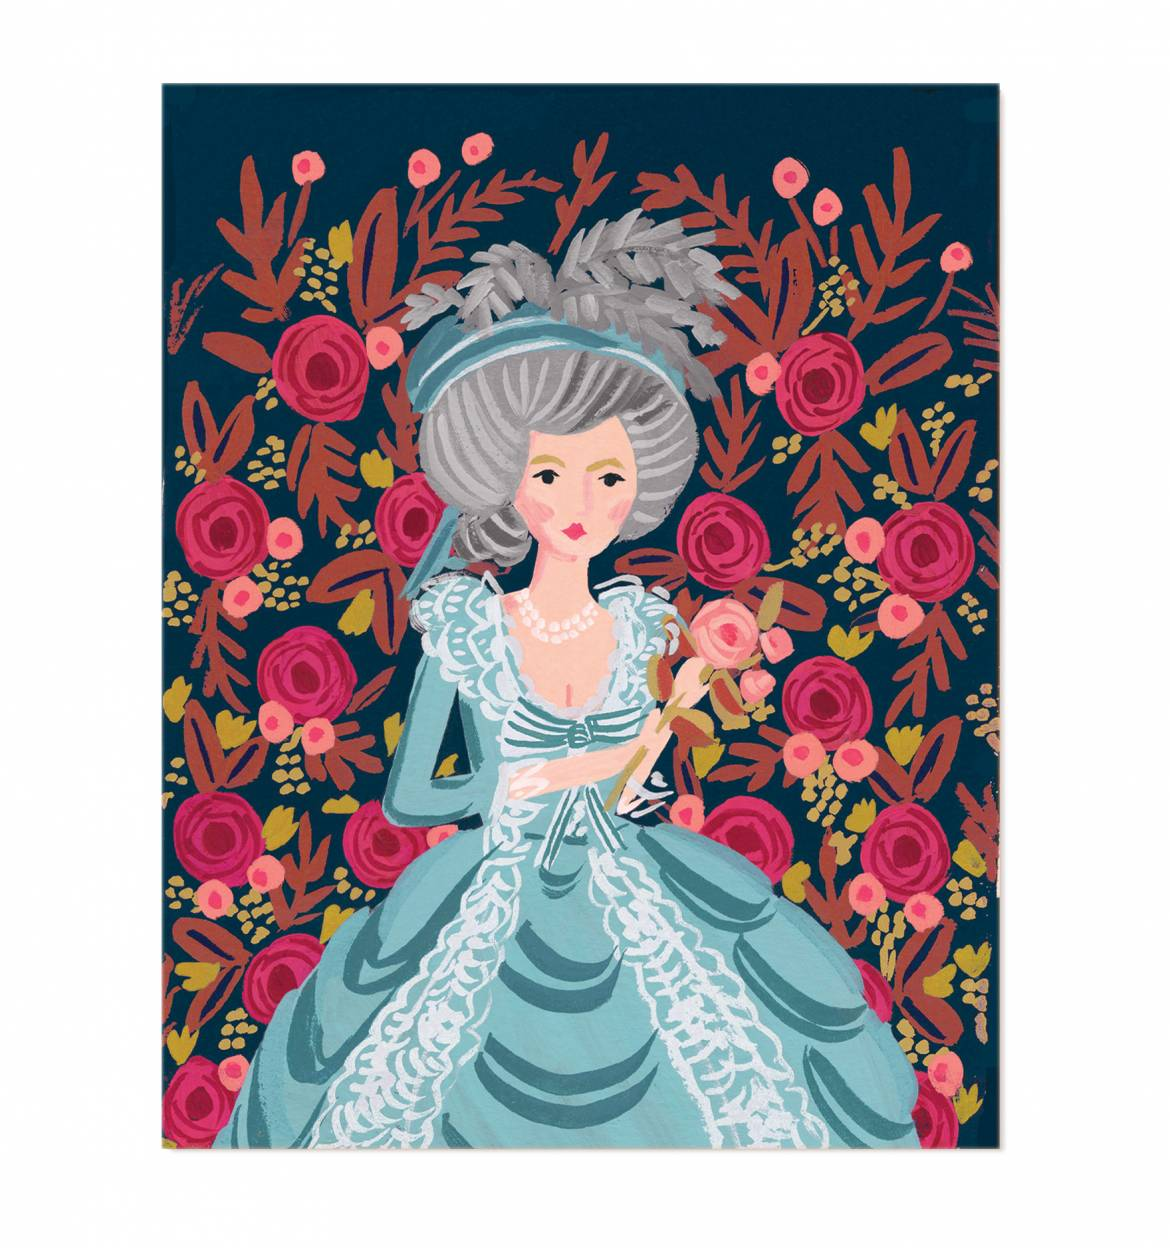 via Rifle Paper Co https://riflepaperco.com/shop/art-prints/marie-antoinette-illustrated-art-print/